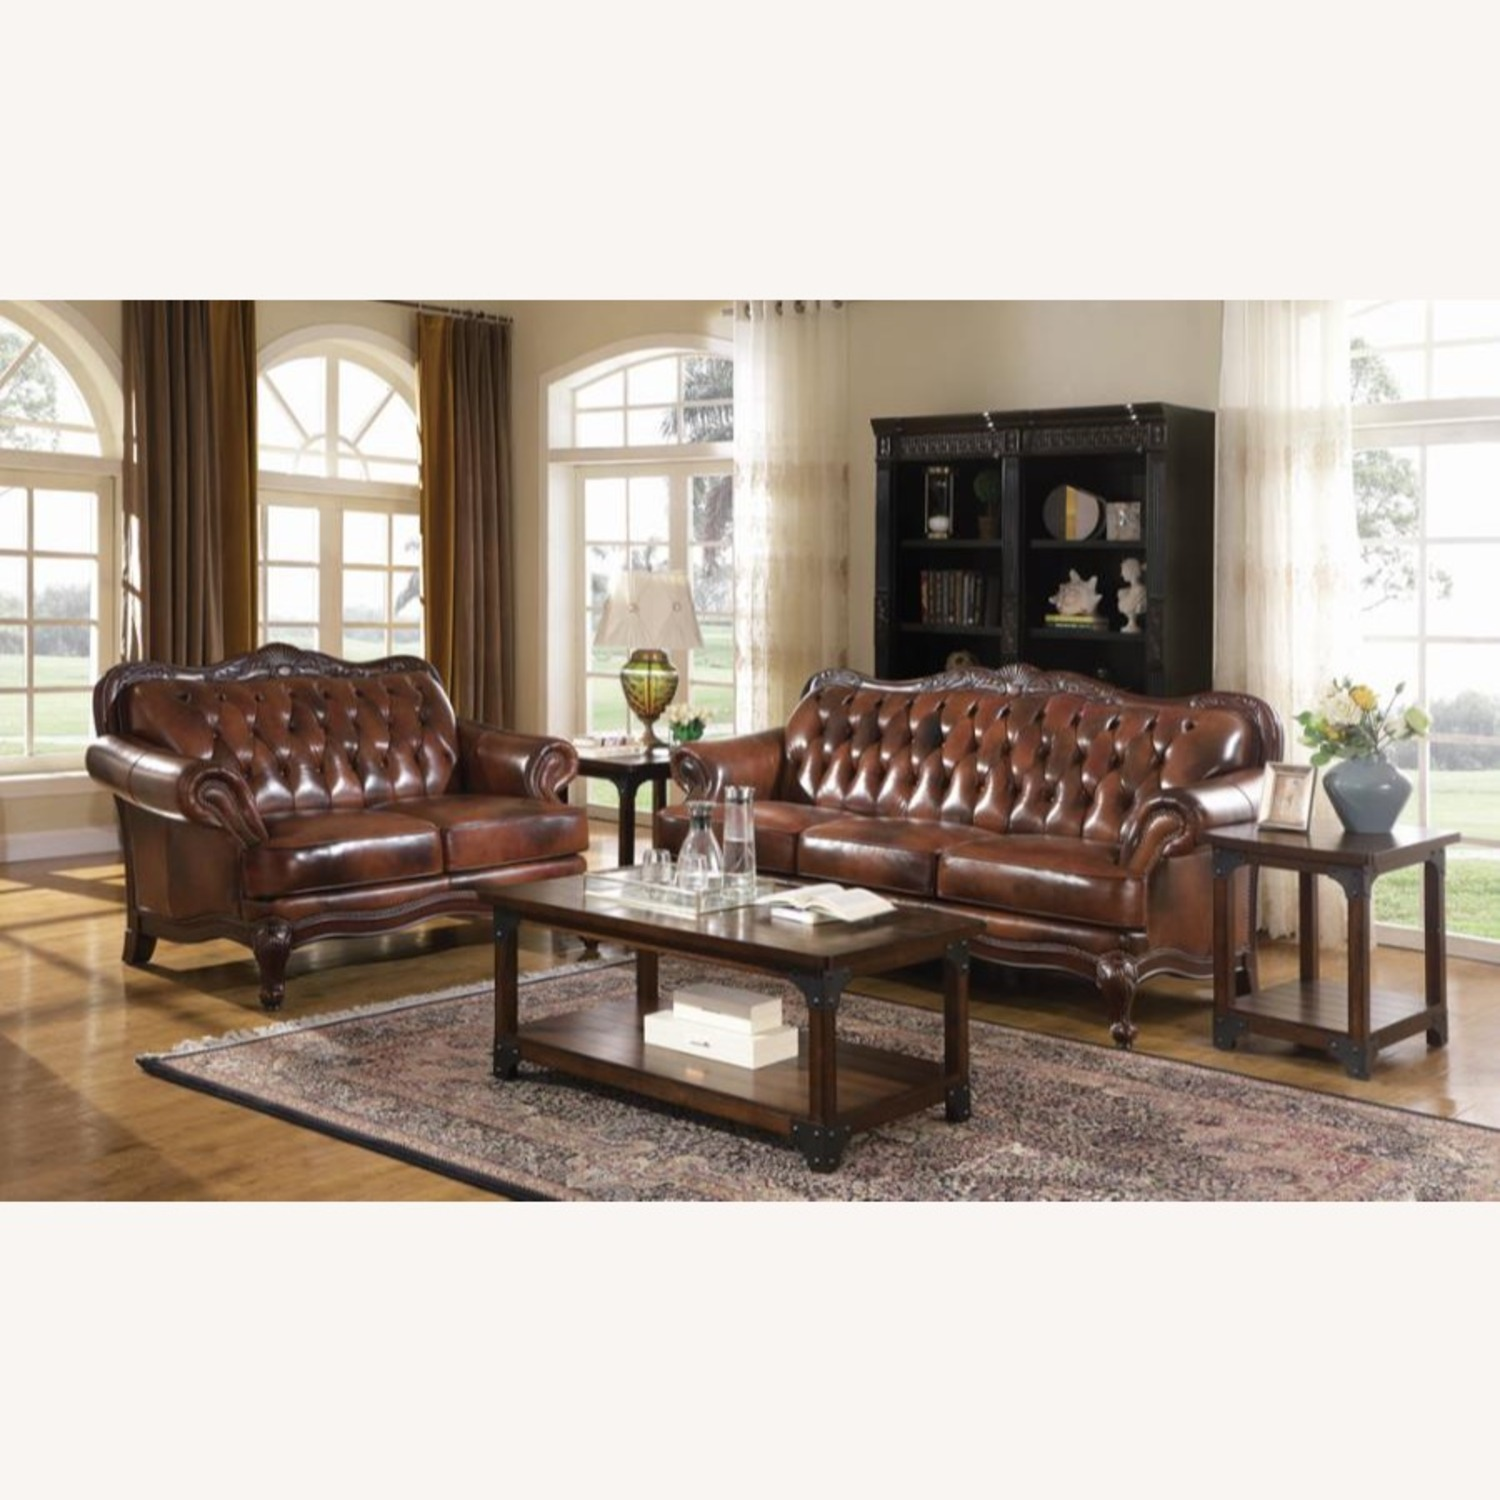 Loveseat In Tri-Tone Leather Finish - image-2